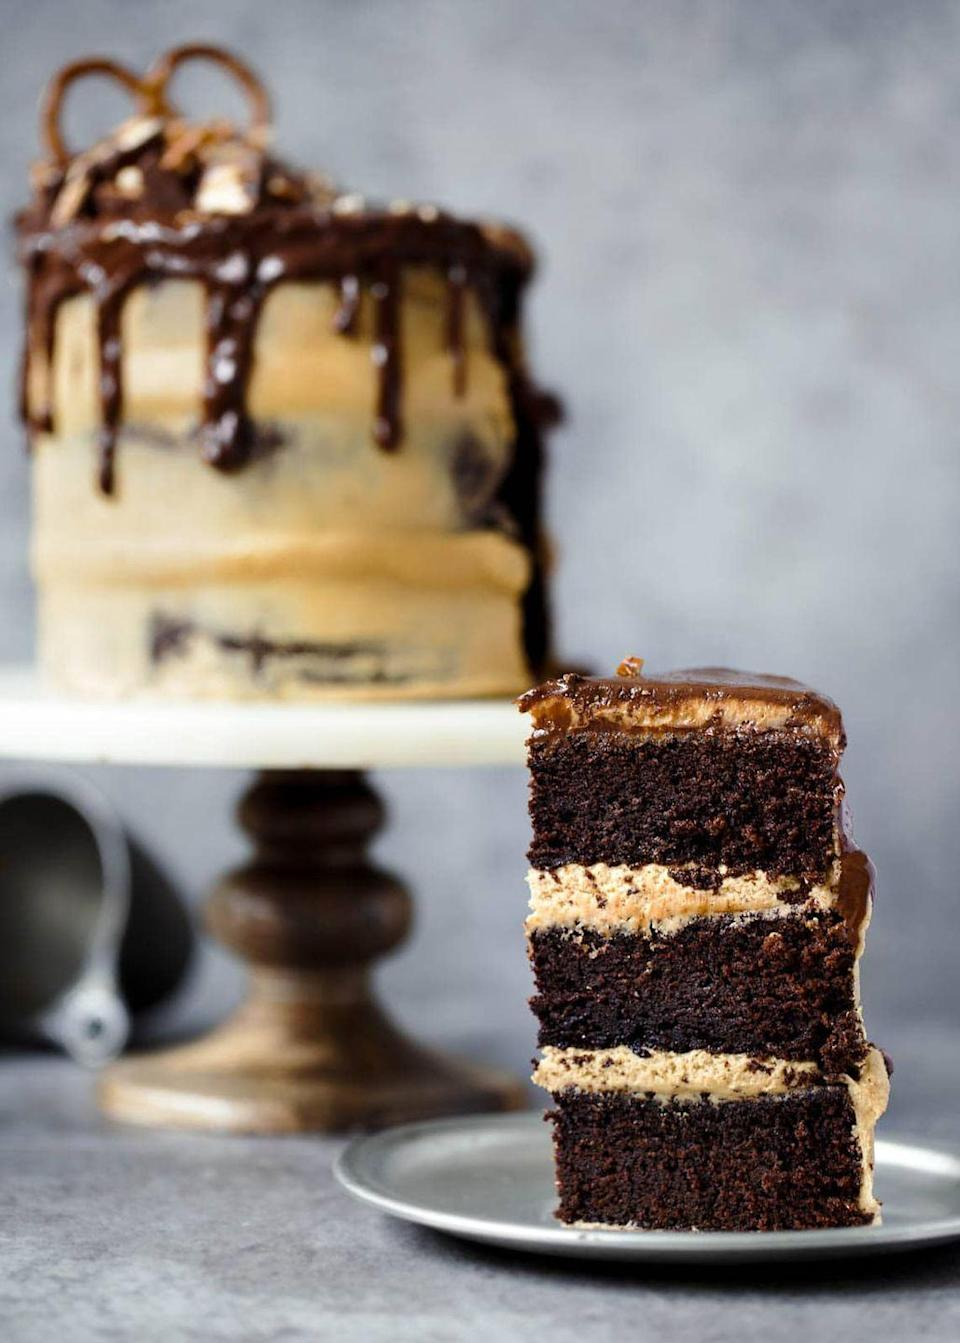 """<p>Creamy peanut butter frosting pairs deliciously with the rich chocolate stout layers of this cake.</p><p><strong>Get the recipe at <a href=""""https://bromabakery.com/peanut-butter-chocolate-stout-cake/"""" rel=""""nofollow noopener"""" target=""""_blank"""" data-ylk=""""slk:Broma Bakery"""" class=""""link rapid-noclick-resp"""">Broma Bakery</a>.</strong></p><p><strong><a class=""""link rapid-noclick-resp"""" href=""""https://go.redirectingat.com?id=74968X1596630&url=https%3A%2F%2Fwww.walmart.com%2Fsearch%2F%3Fquery%3Dcake%2Bpans&sref=https%3A%2F%2Fwww.thepioneerwoman.com%2Ffood-cooking%2Fmeals-menus%2Fg35269814%2Fst-patricks-day-desserts%2F"""" rel=""""nofollow noopener"""" target=""""_blank"""" data-ylk=""""slk:SHOP CAKE PANS"""">SHOP CAKE PANS</a><br></strong></p>"""